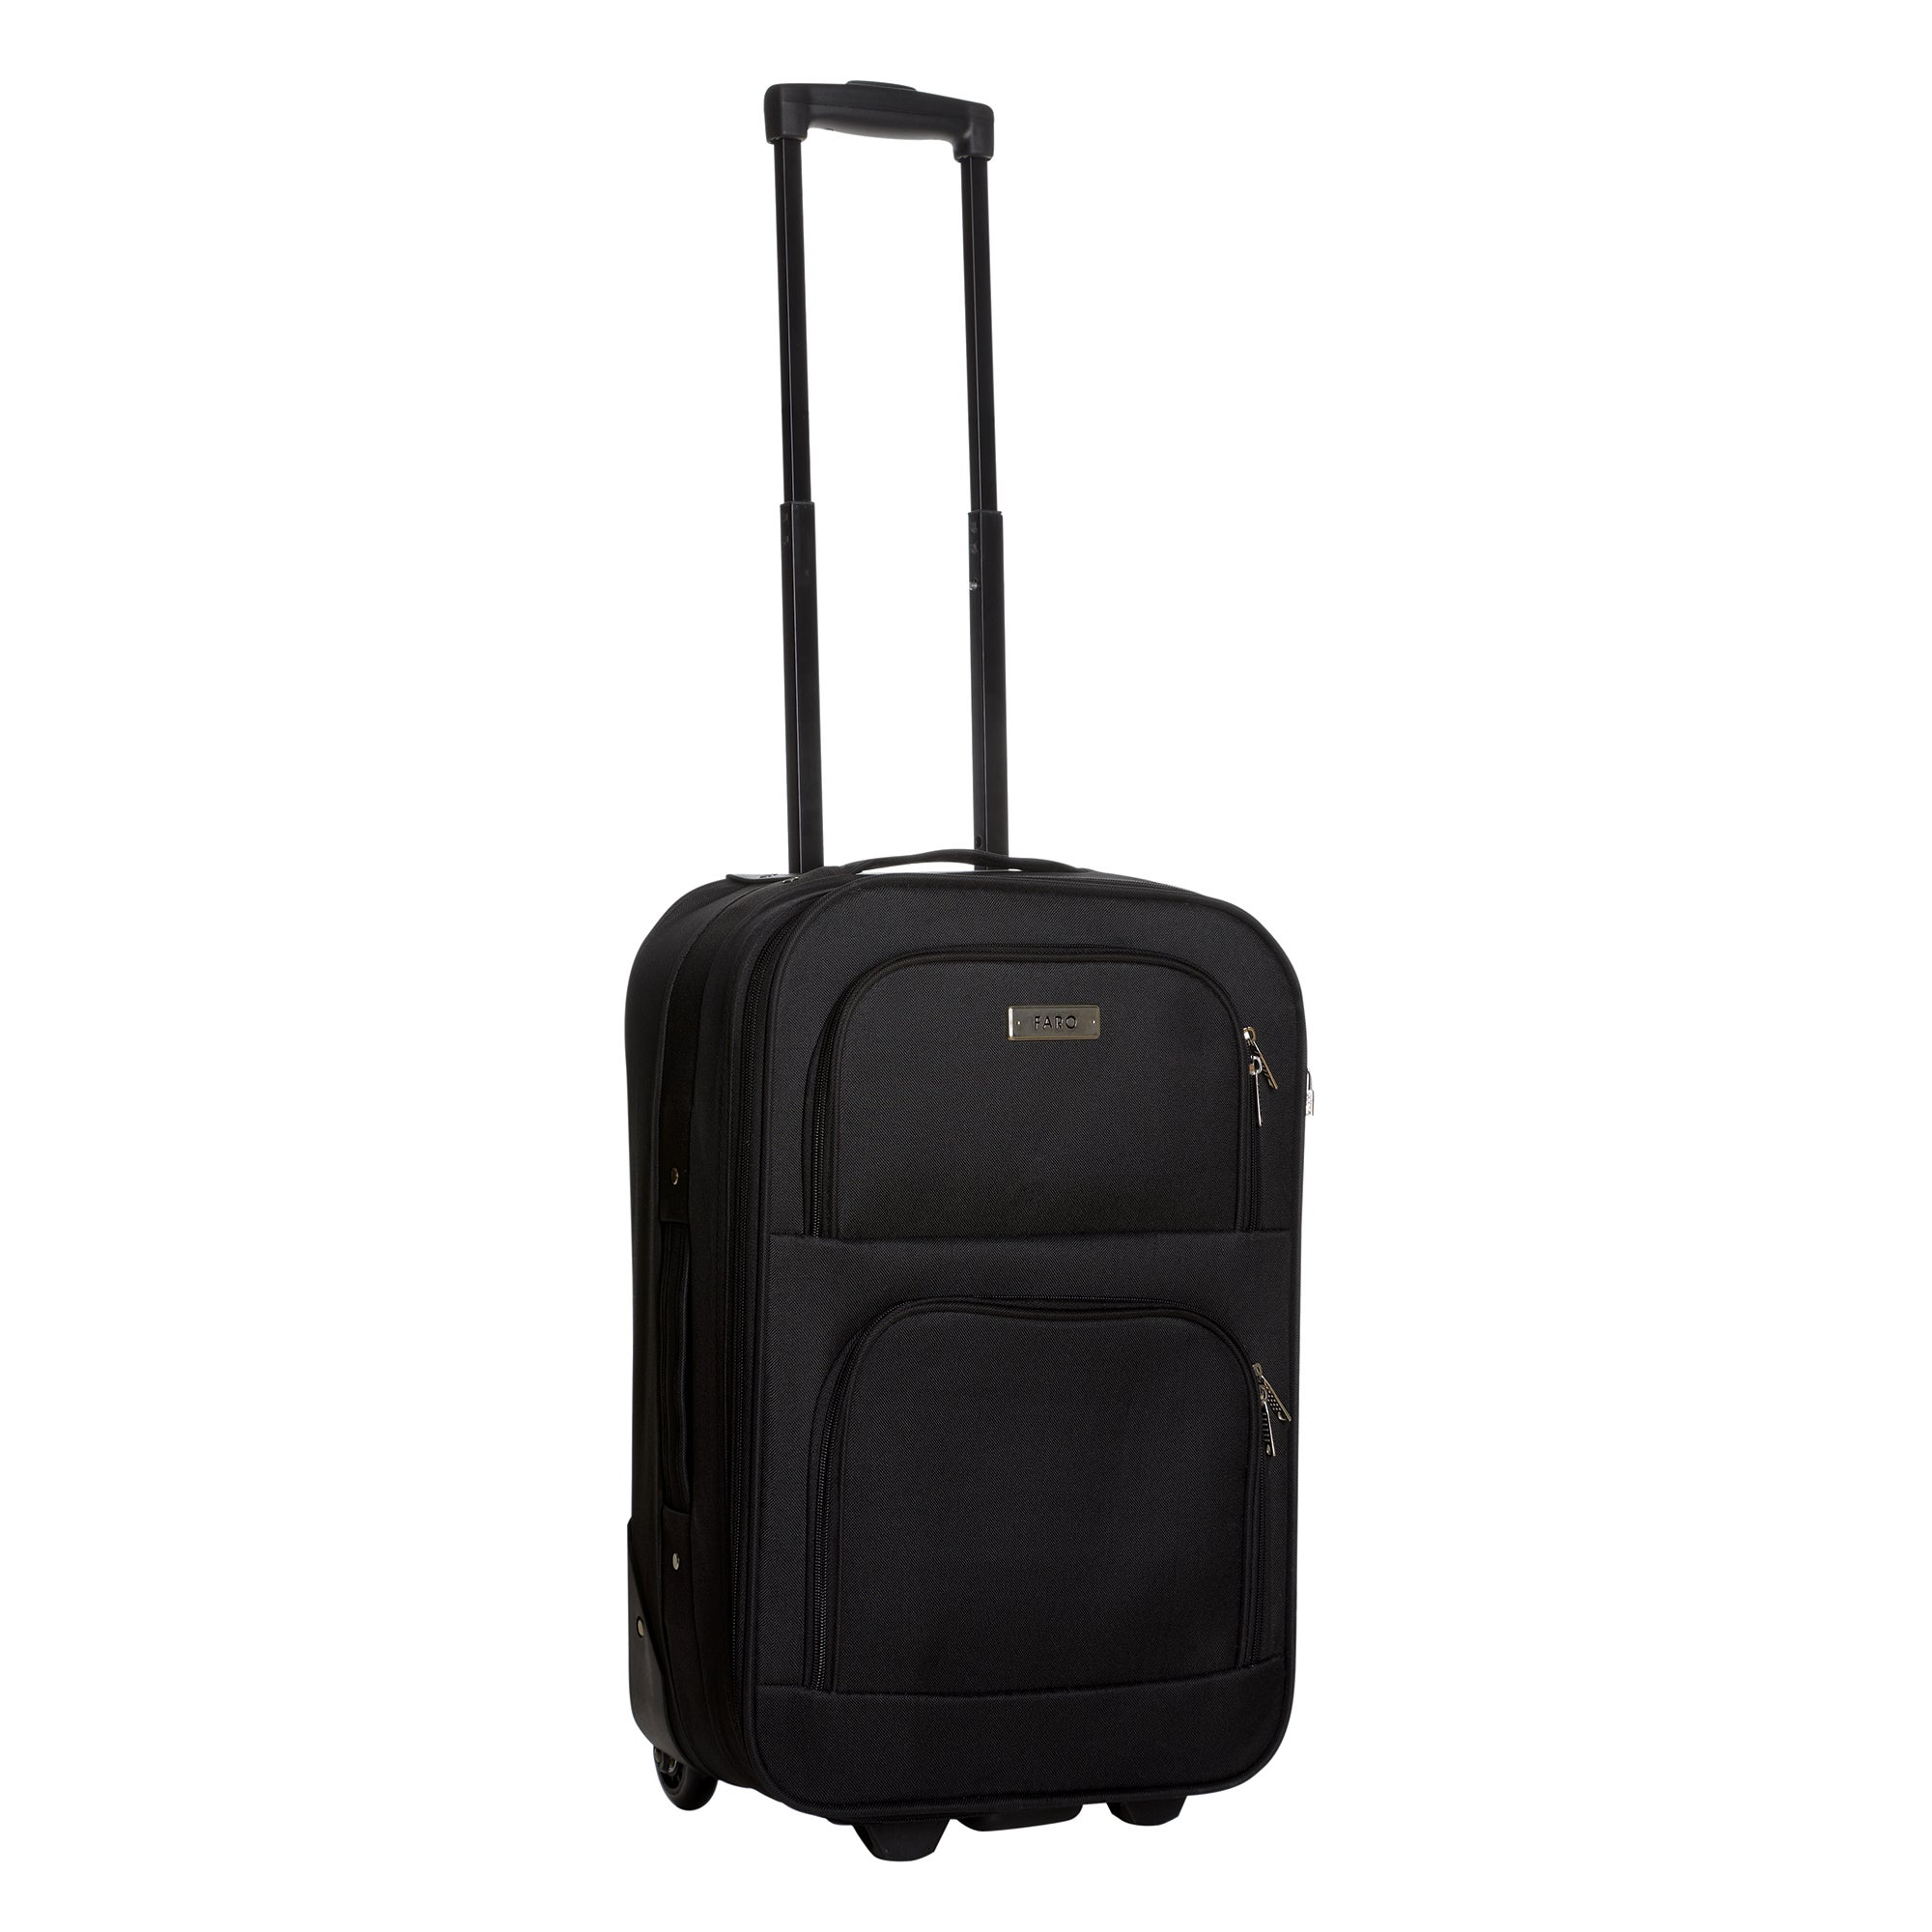 Faro Black 20 Inch Weekend Case